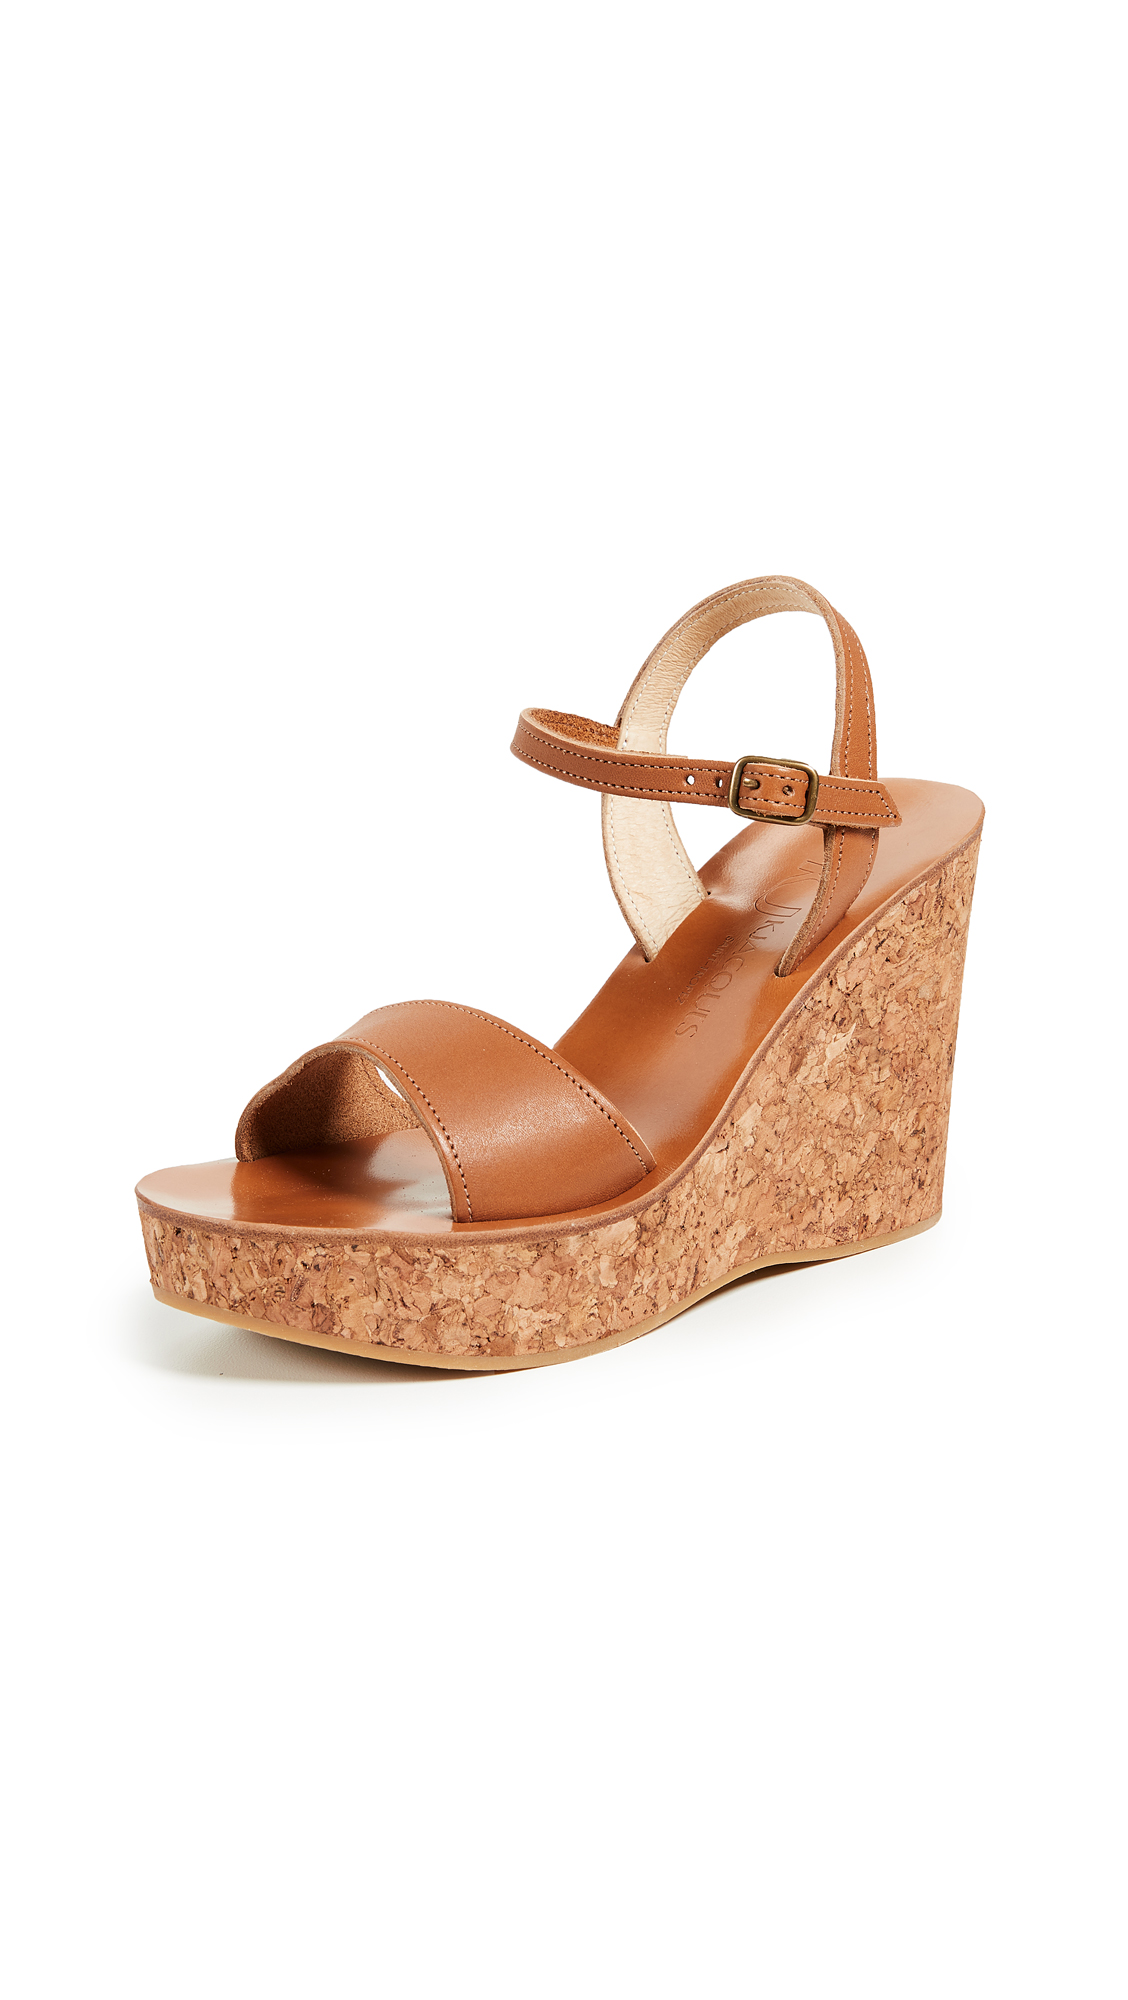 K. Jacques Sharon Wedges